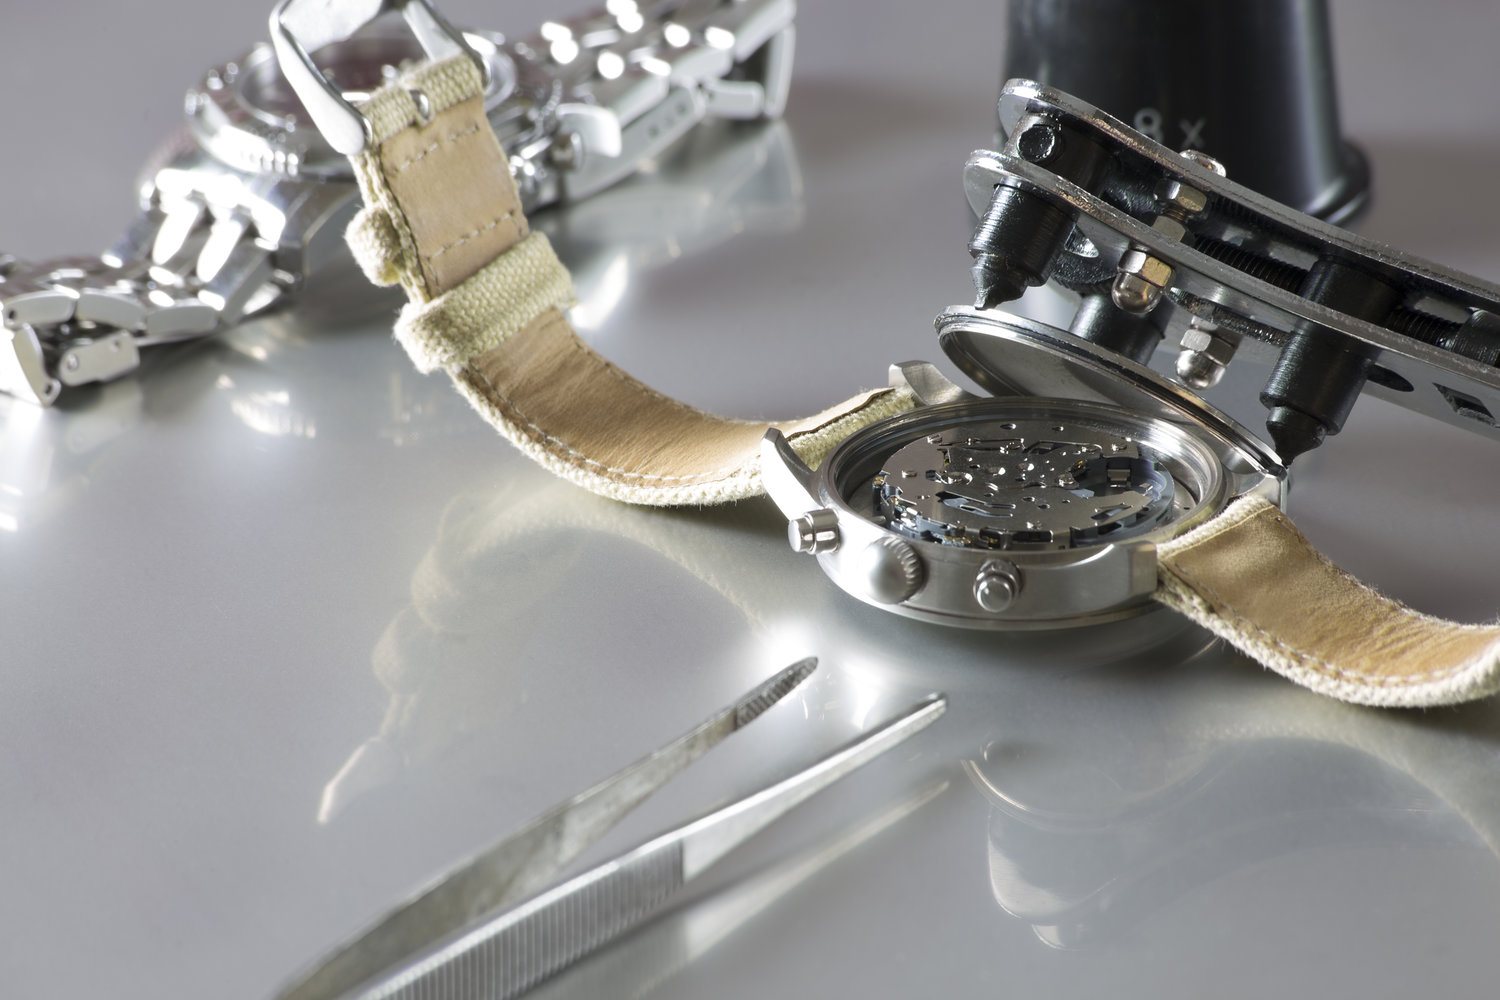 watch battery replacement / macro of replacing a watch battery with watchmaker tools